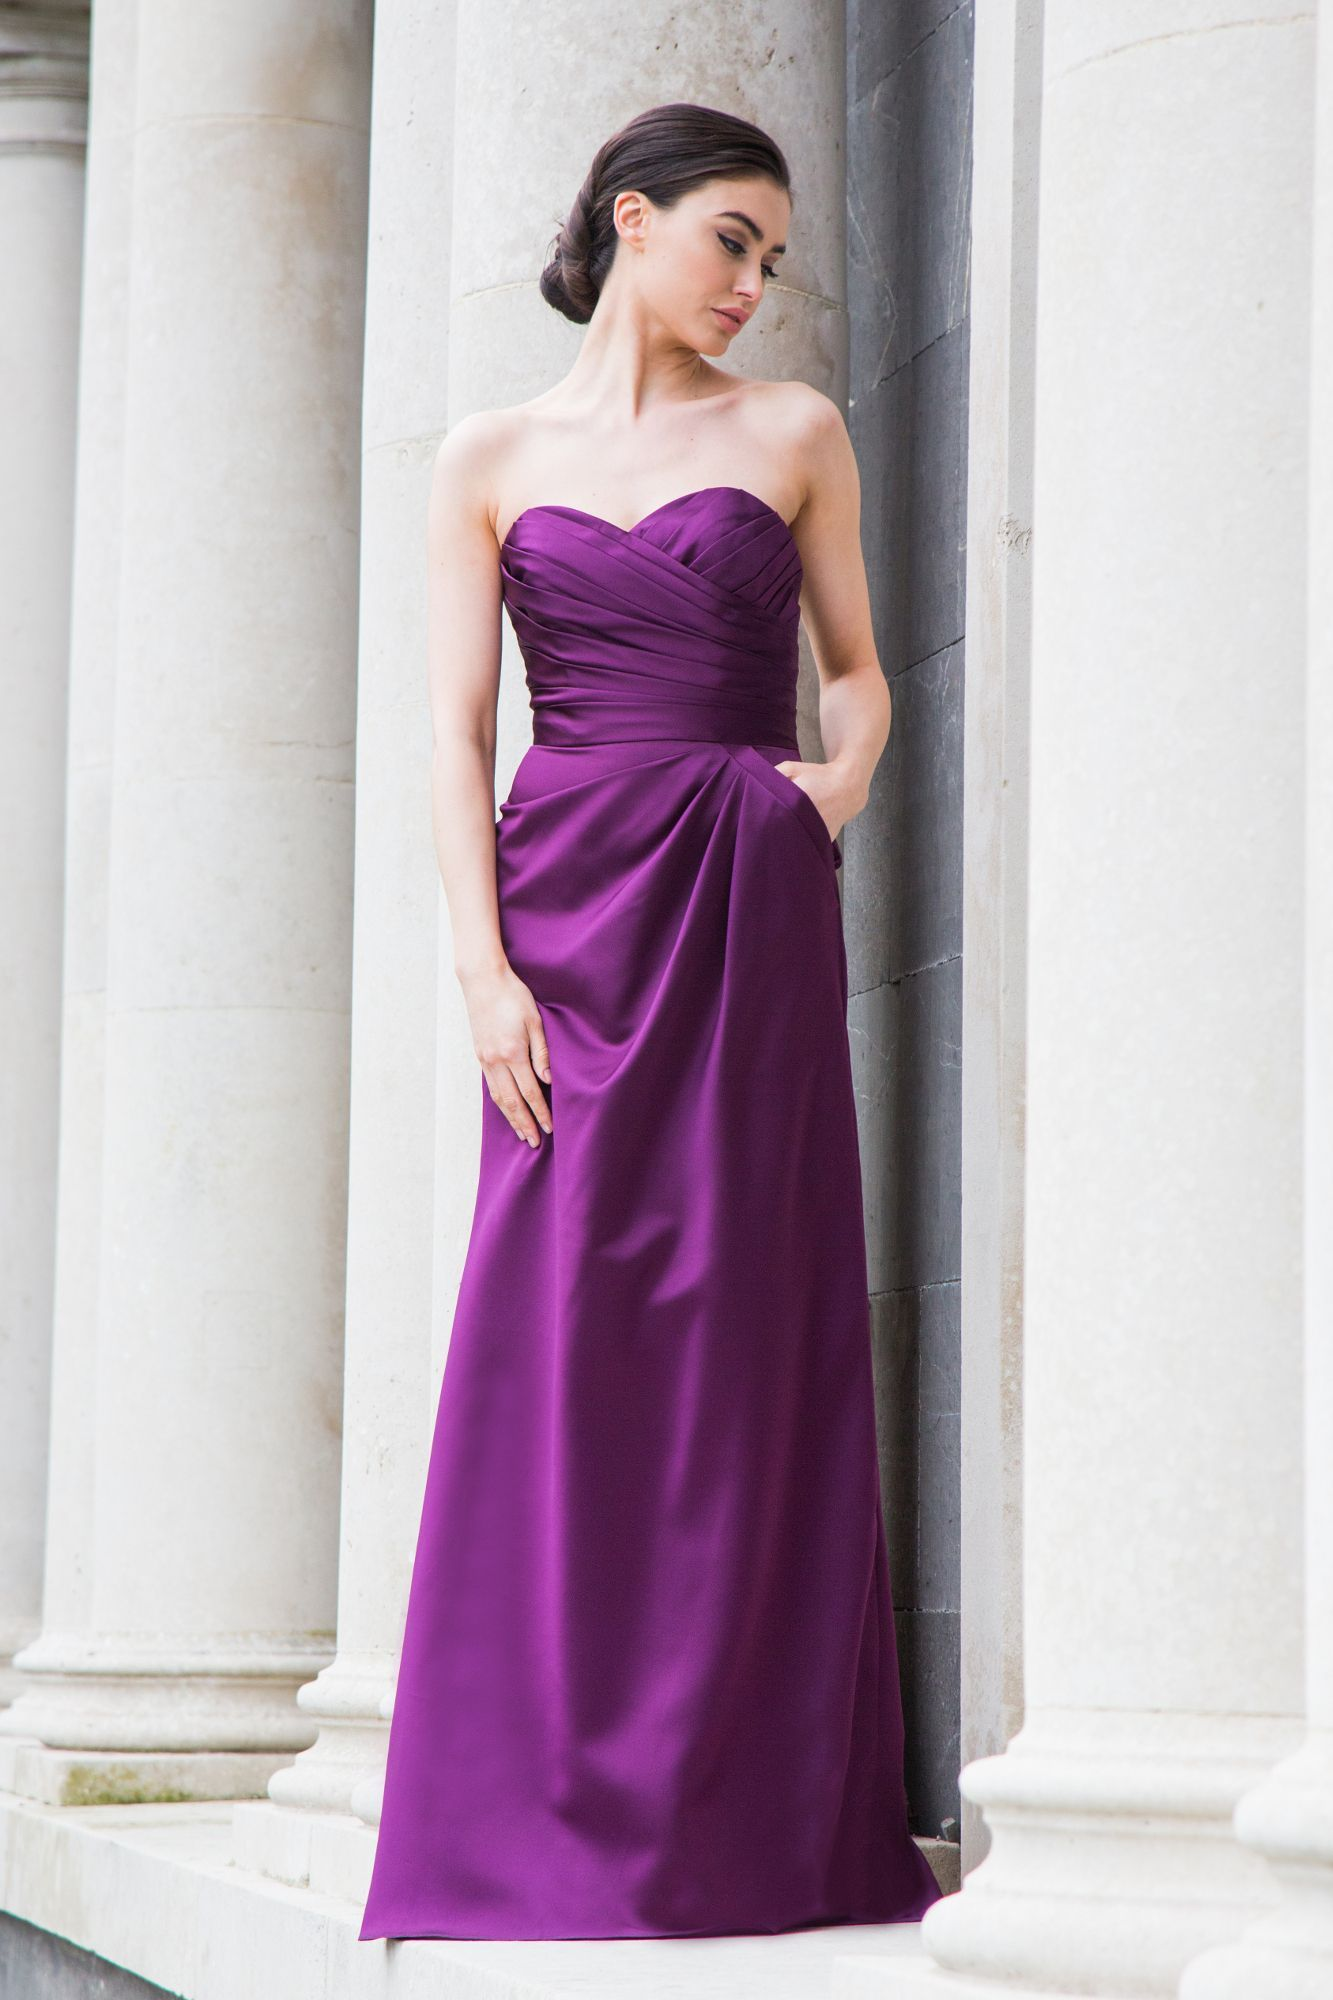 Satin Corsagenkleid lang Aubergine Lila Special Day in 11